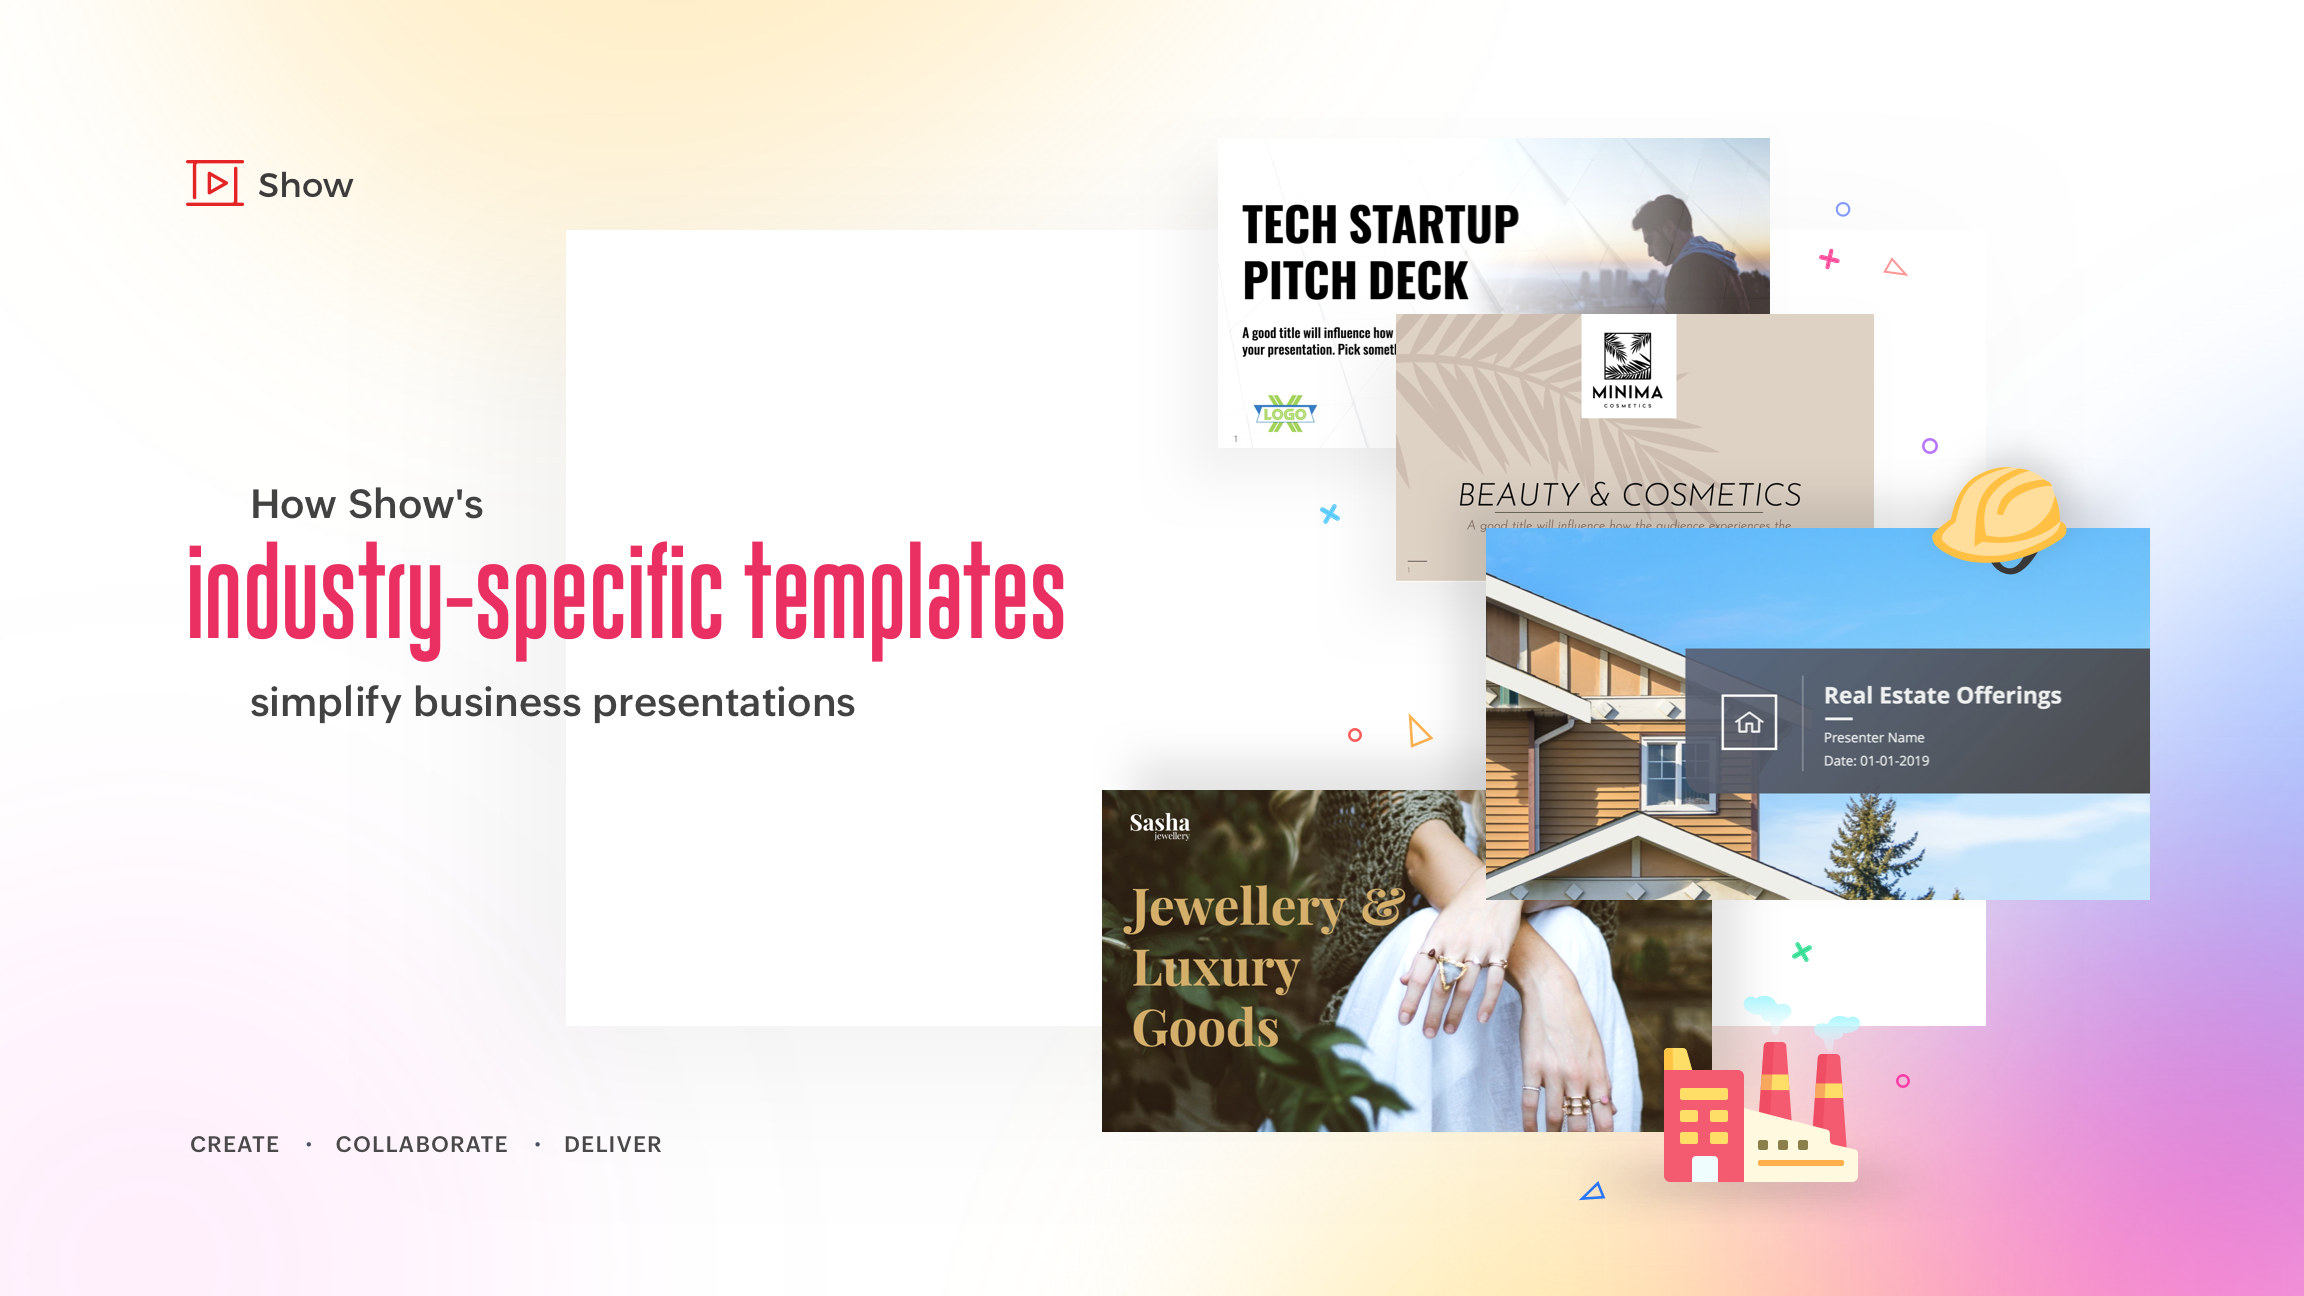 How Show's industry-specific templates simplify business presentations